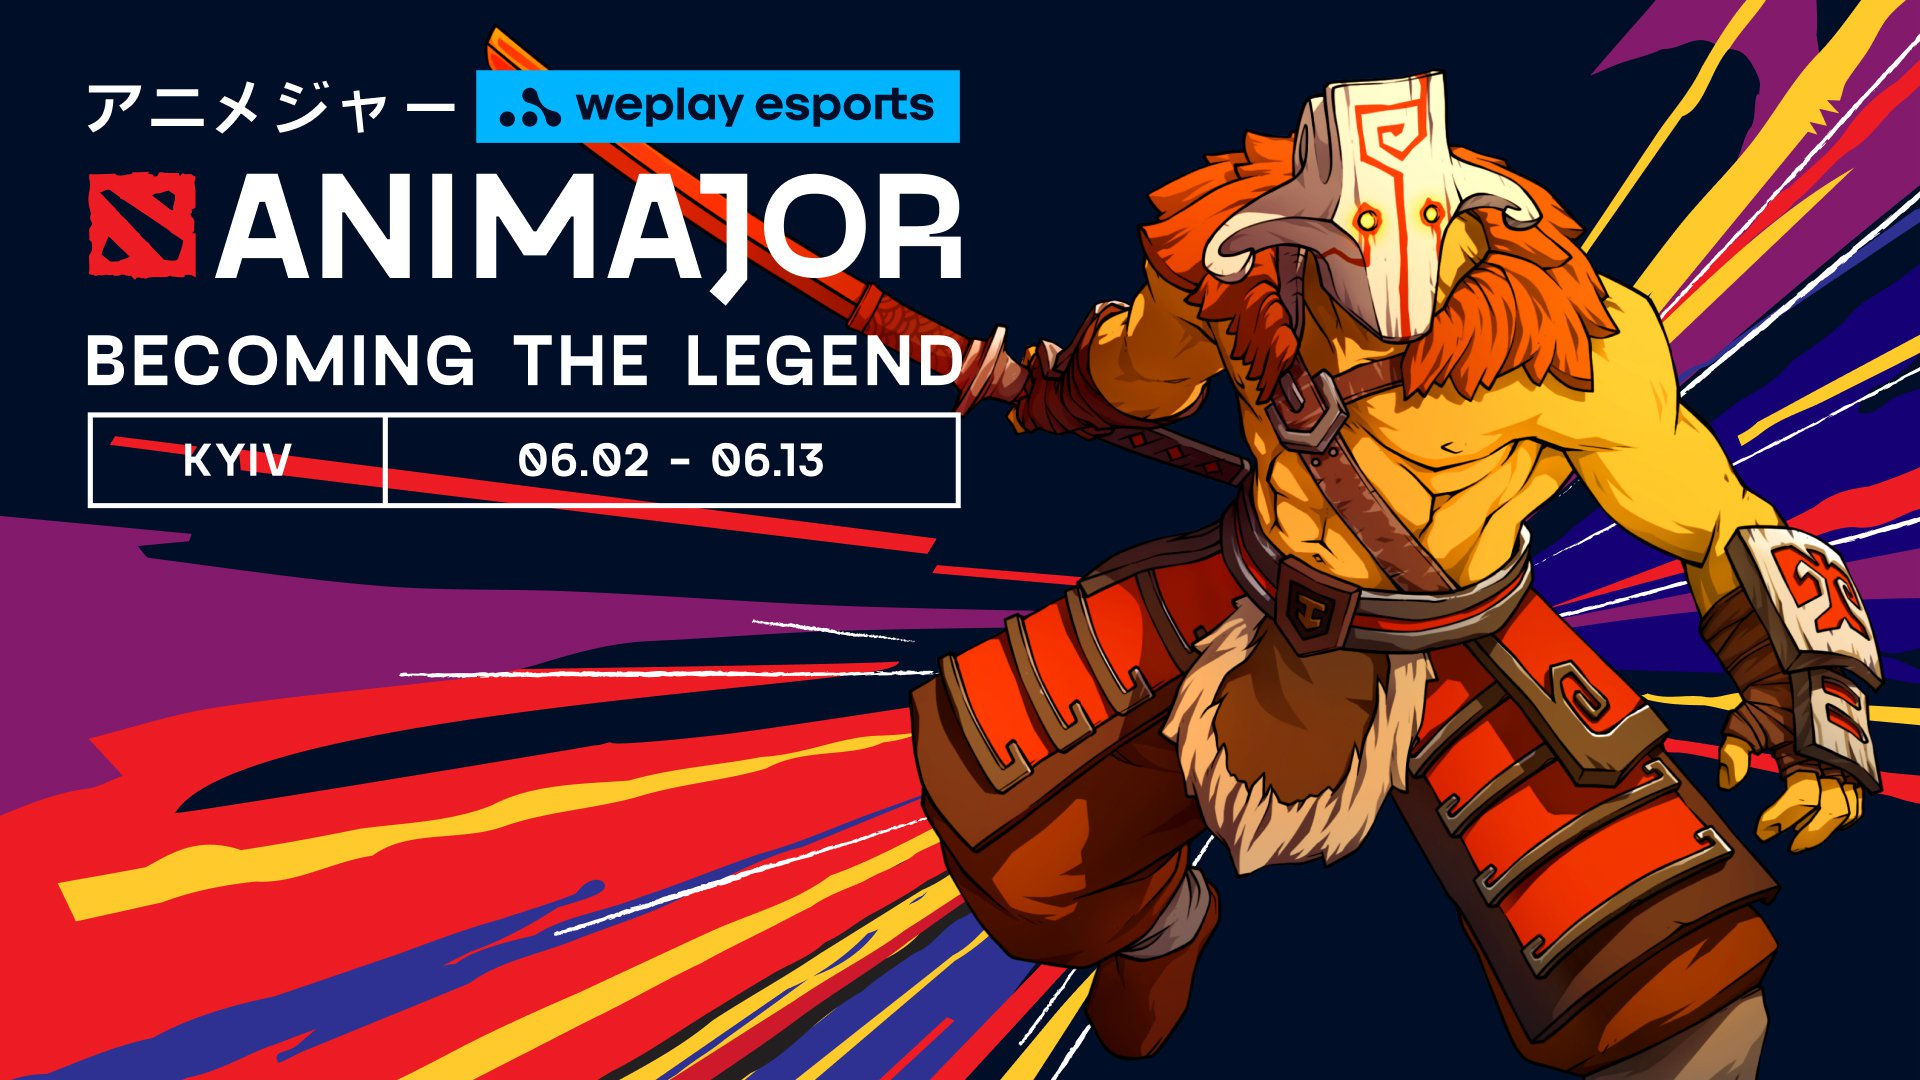 WePlay Esports will hold Kyiv Dota Pro Circuit Major, the second one this season